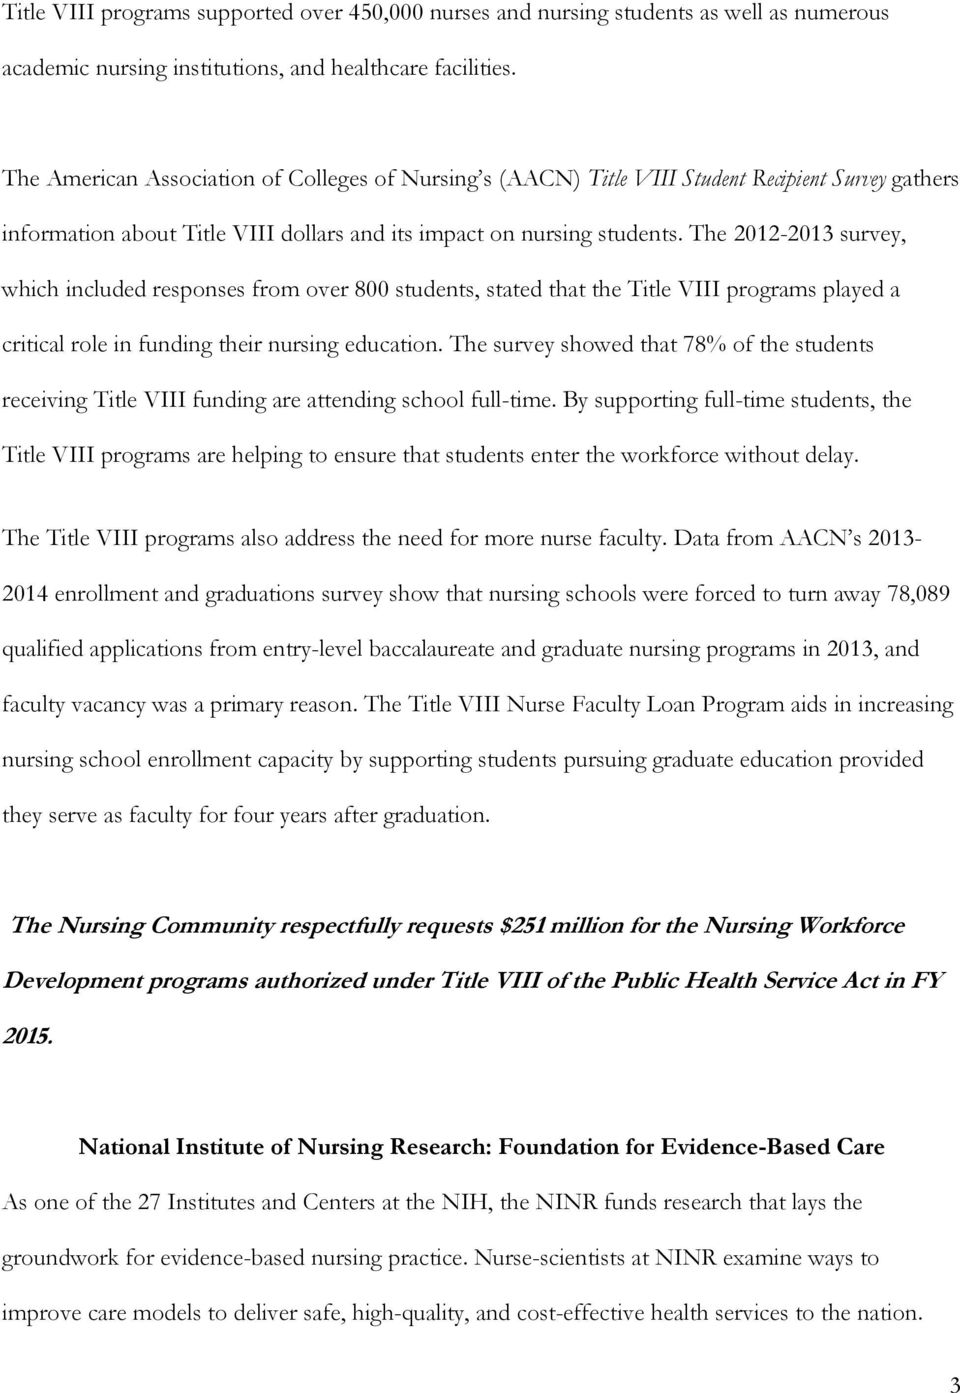 The 2012-2013 survey, which included responses from over 800 students, stated that the Title VIII programs played a critical role in funding their nursing education.